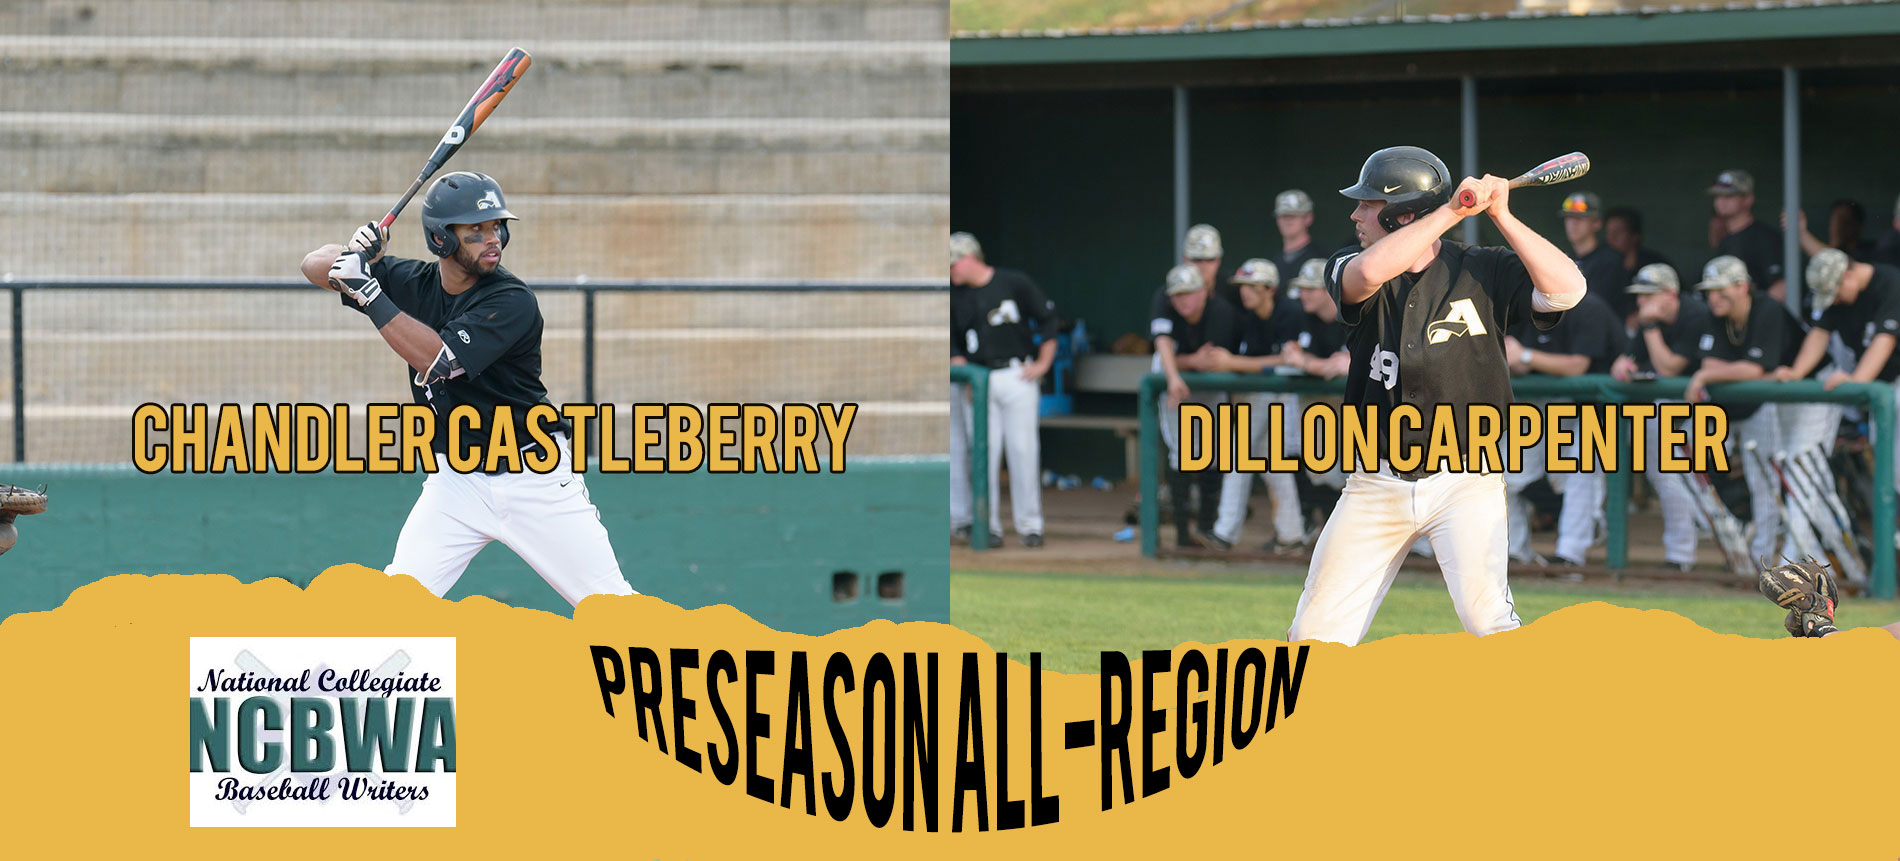 Carpenter and Castleberry Named to NCBWA Preseason All-Region Team